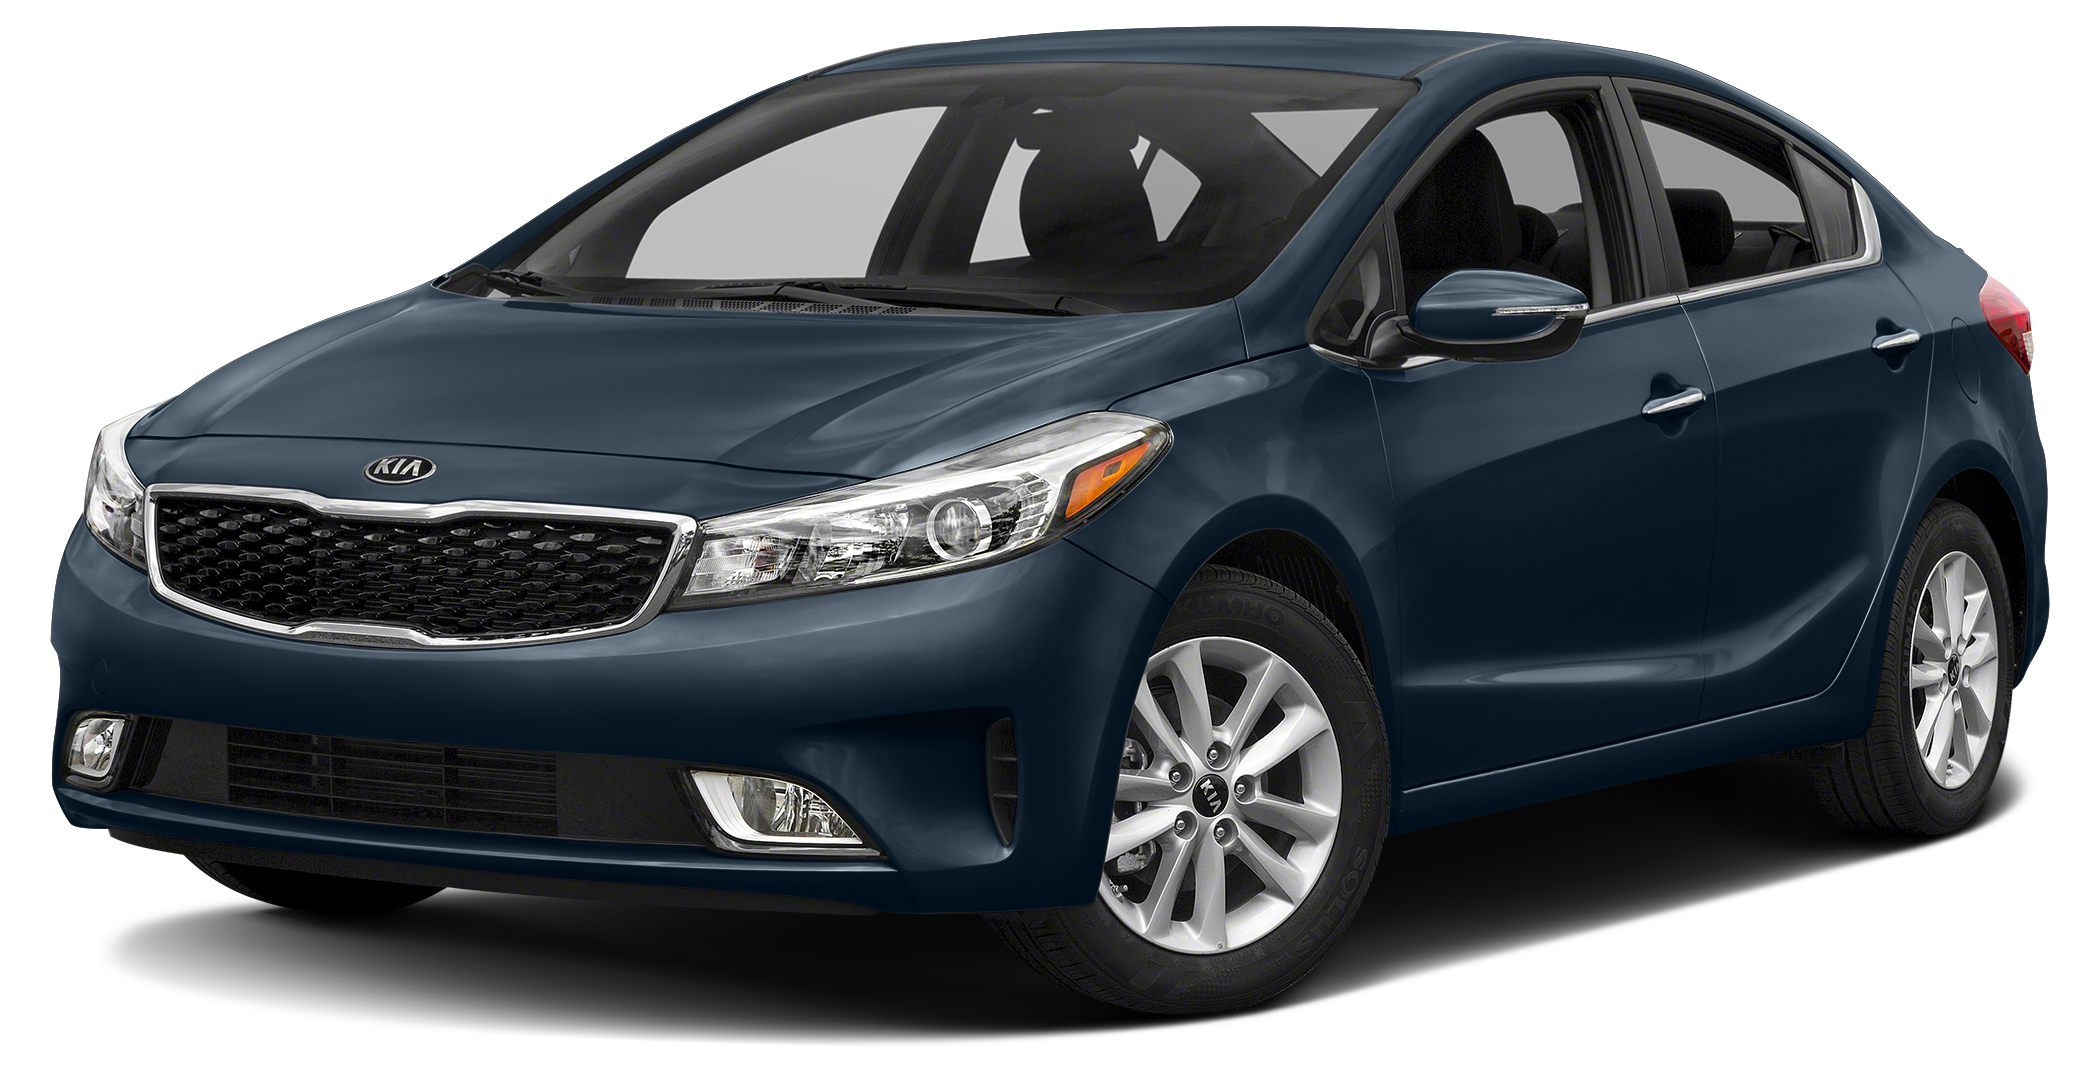 2018 Kia Forte S Miles 10Color Deep Sea Blue Stock SB17932 VIN 3KPFL4A74JE214342